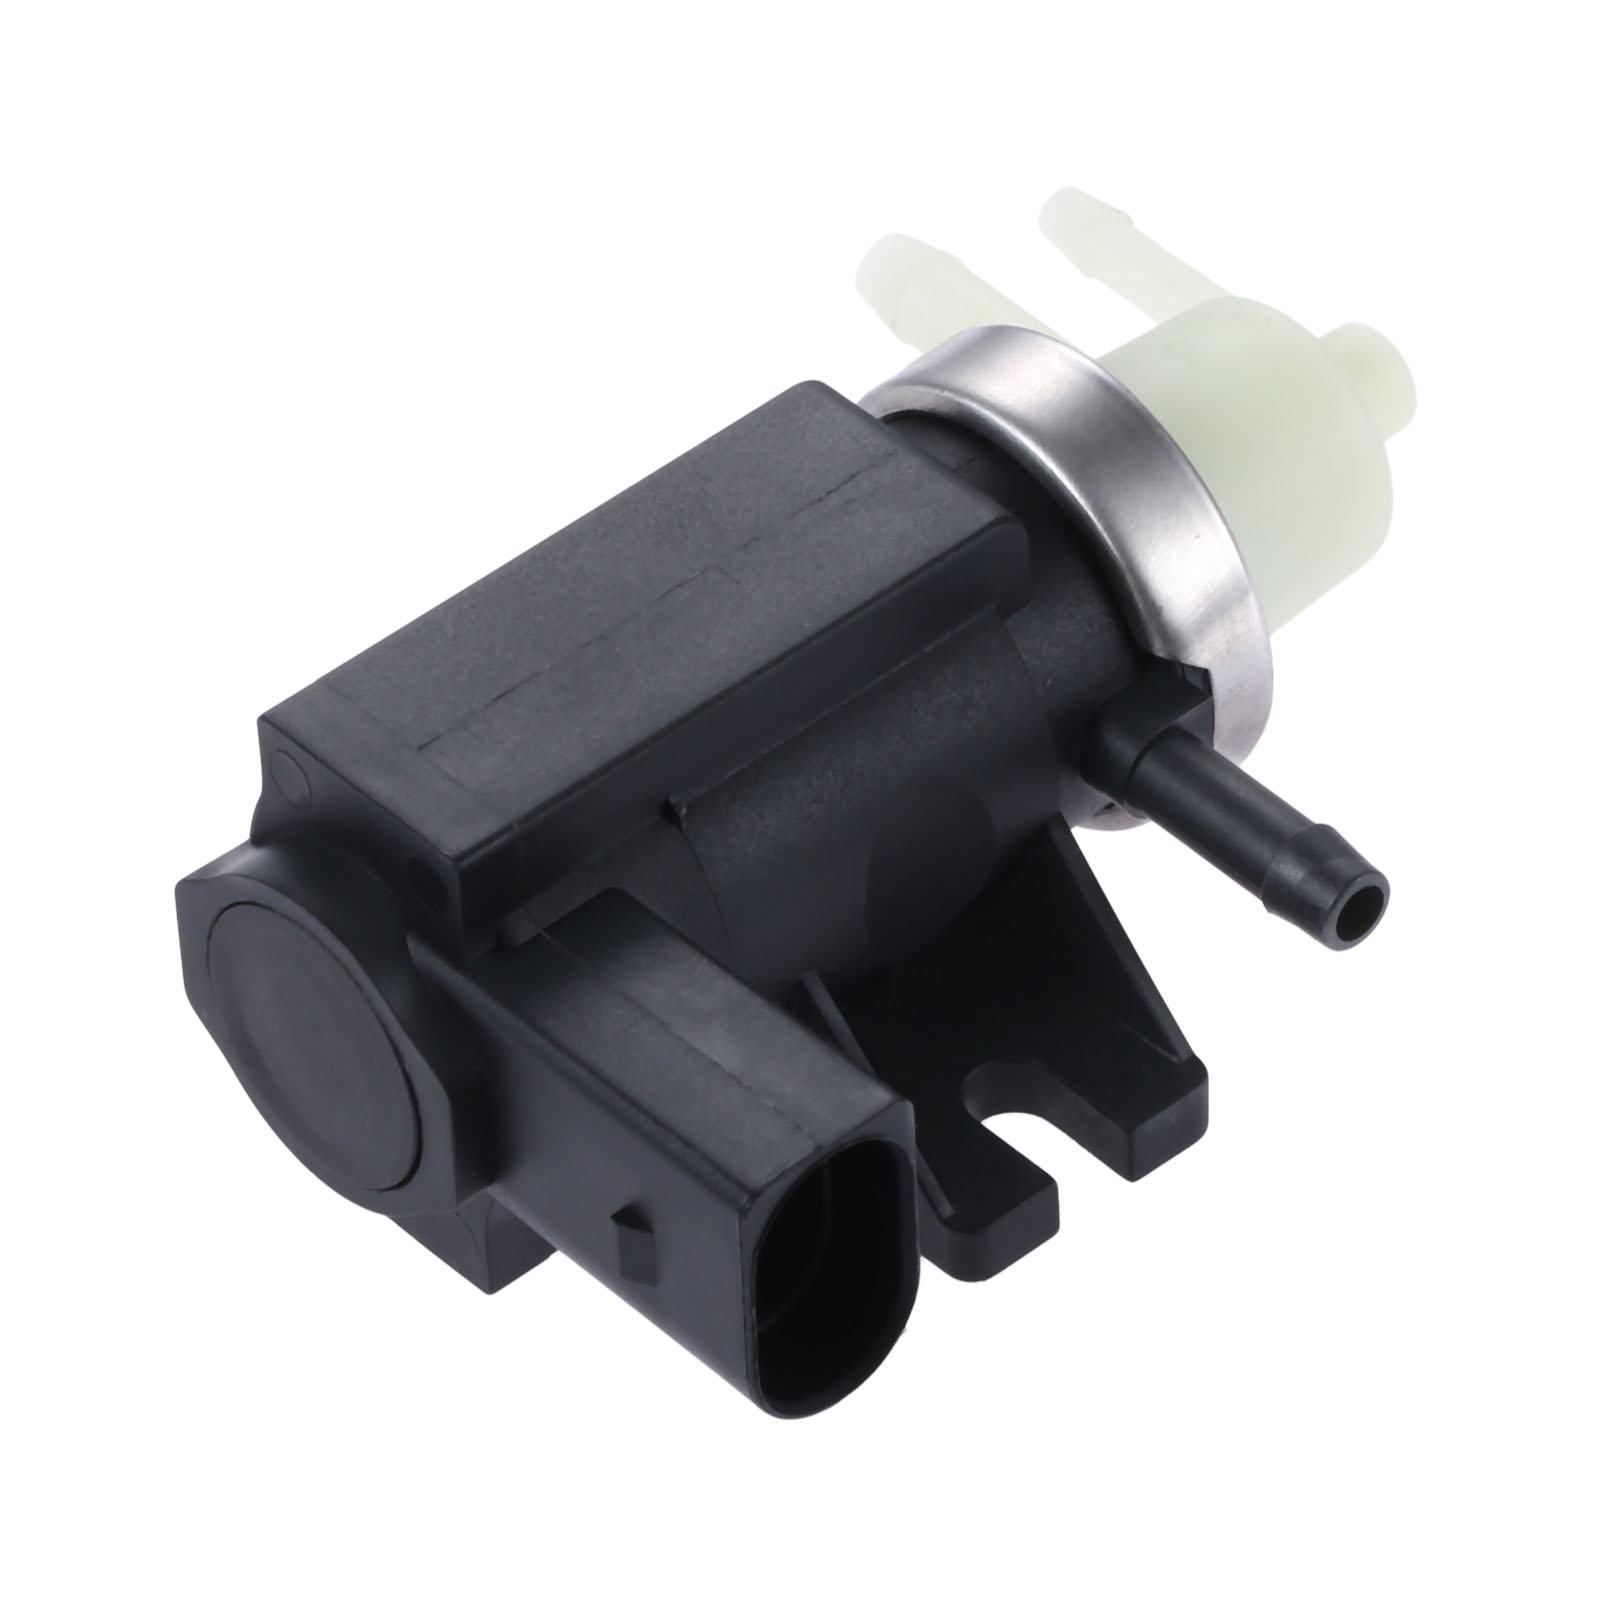 Image 2 - Yetaha 1J0906627A New Boost Pressure Solenoid Converter Valve For VW For Jetta Sedan Wagon TDI Passat Beetle Golf TDI 2000 2006-in Exhaust Gas Recirculation Valve from Automobiles & Motorcycles